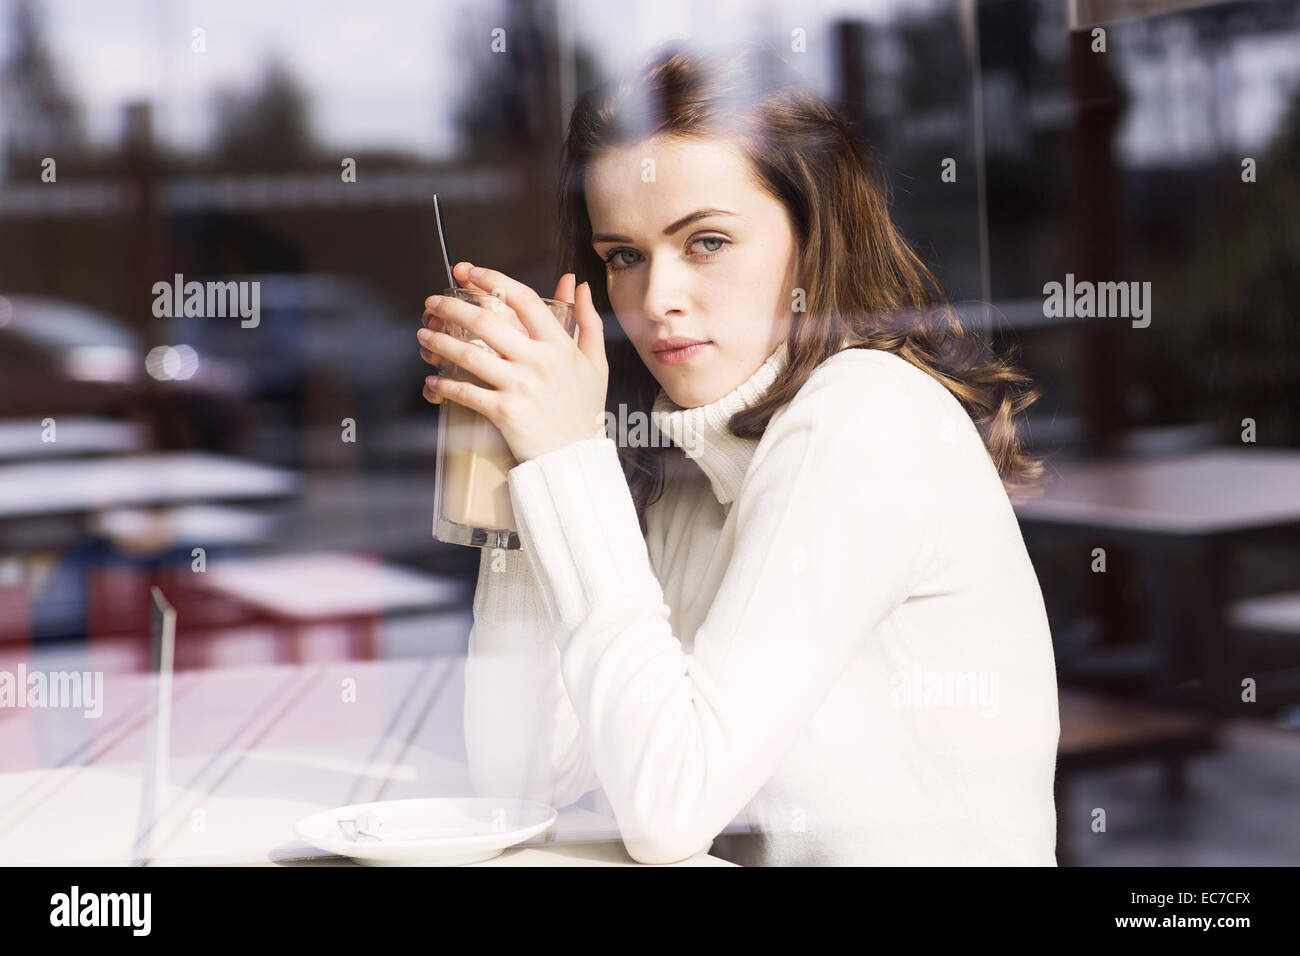 Portrait of young woman with Latte Macchiato sitting in a cafe looking through window pane - Stock Image